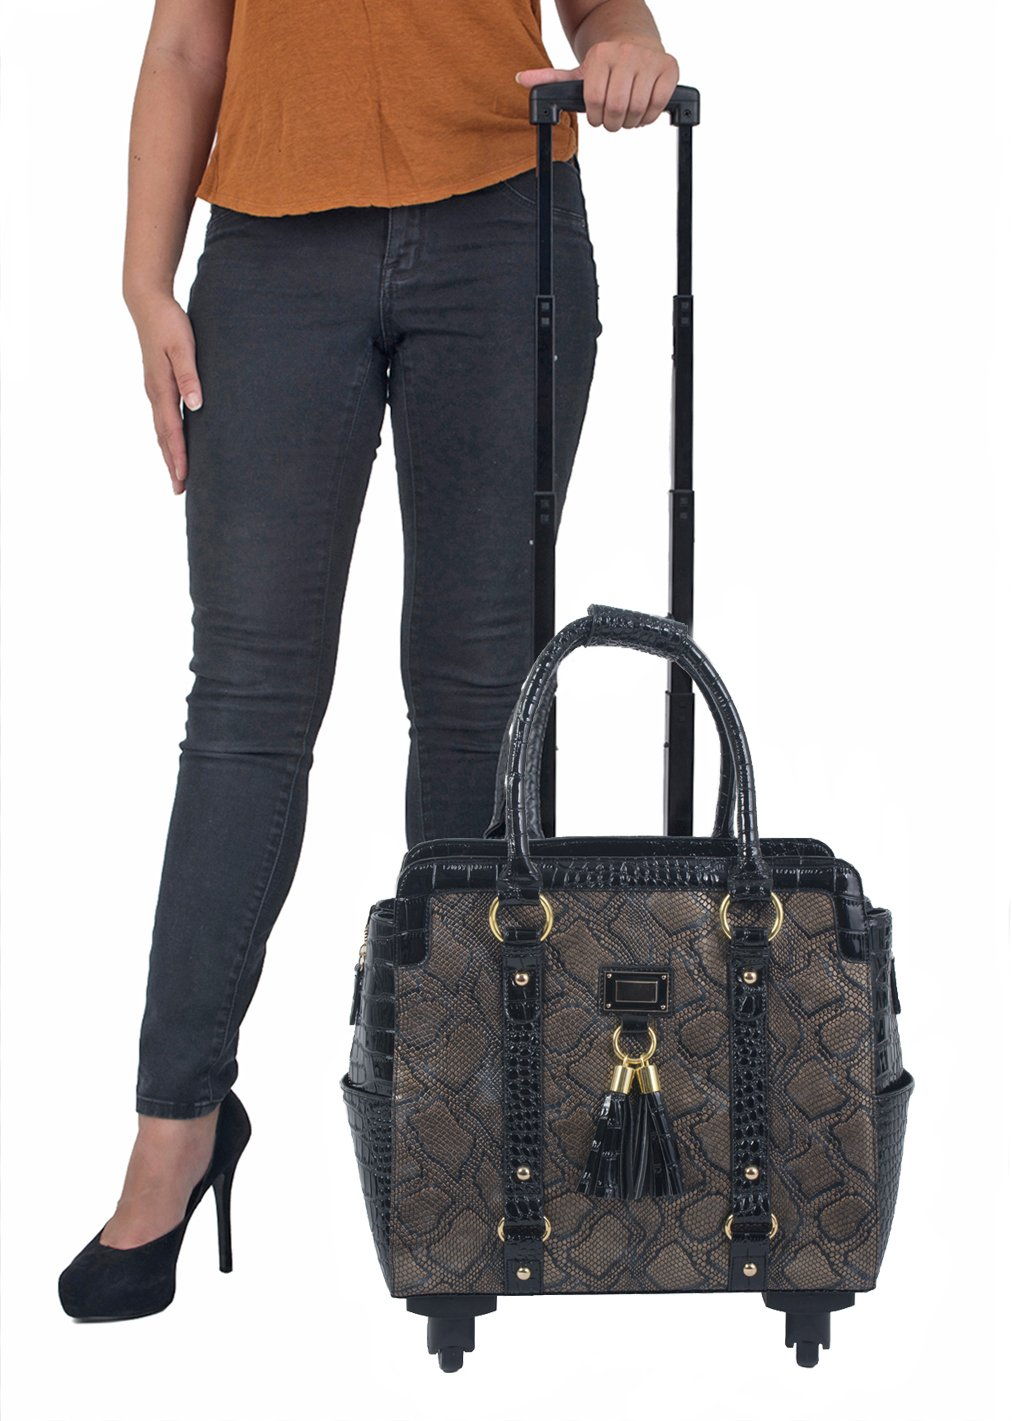 Bronze & Black Python Computer iPad, Laptop Tablet Rolling Tote Bag Briefcase Carryall Bag with Spinner Wheels by JKM and Company